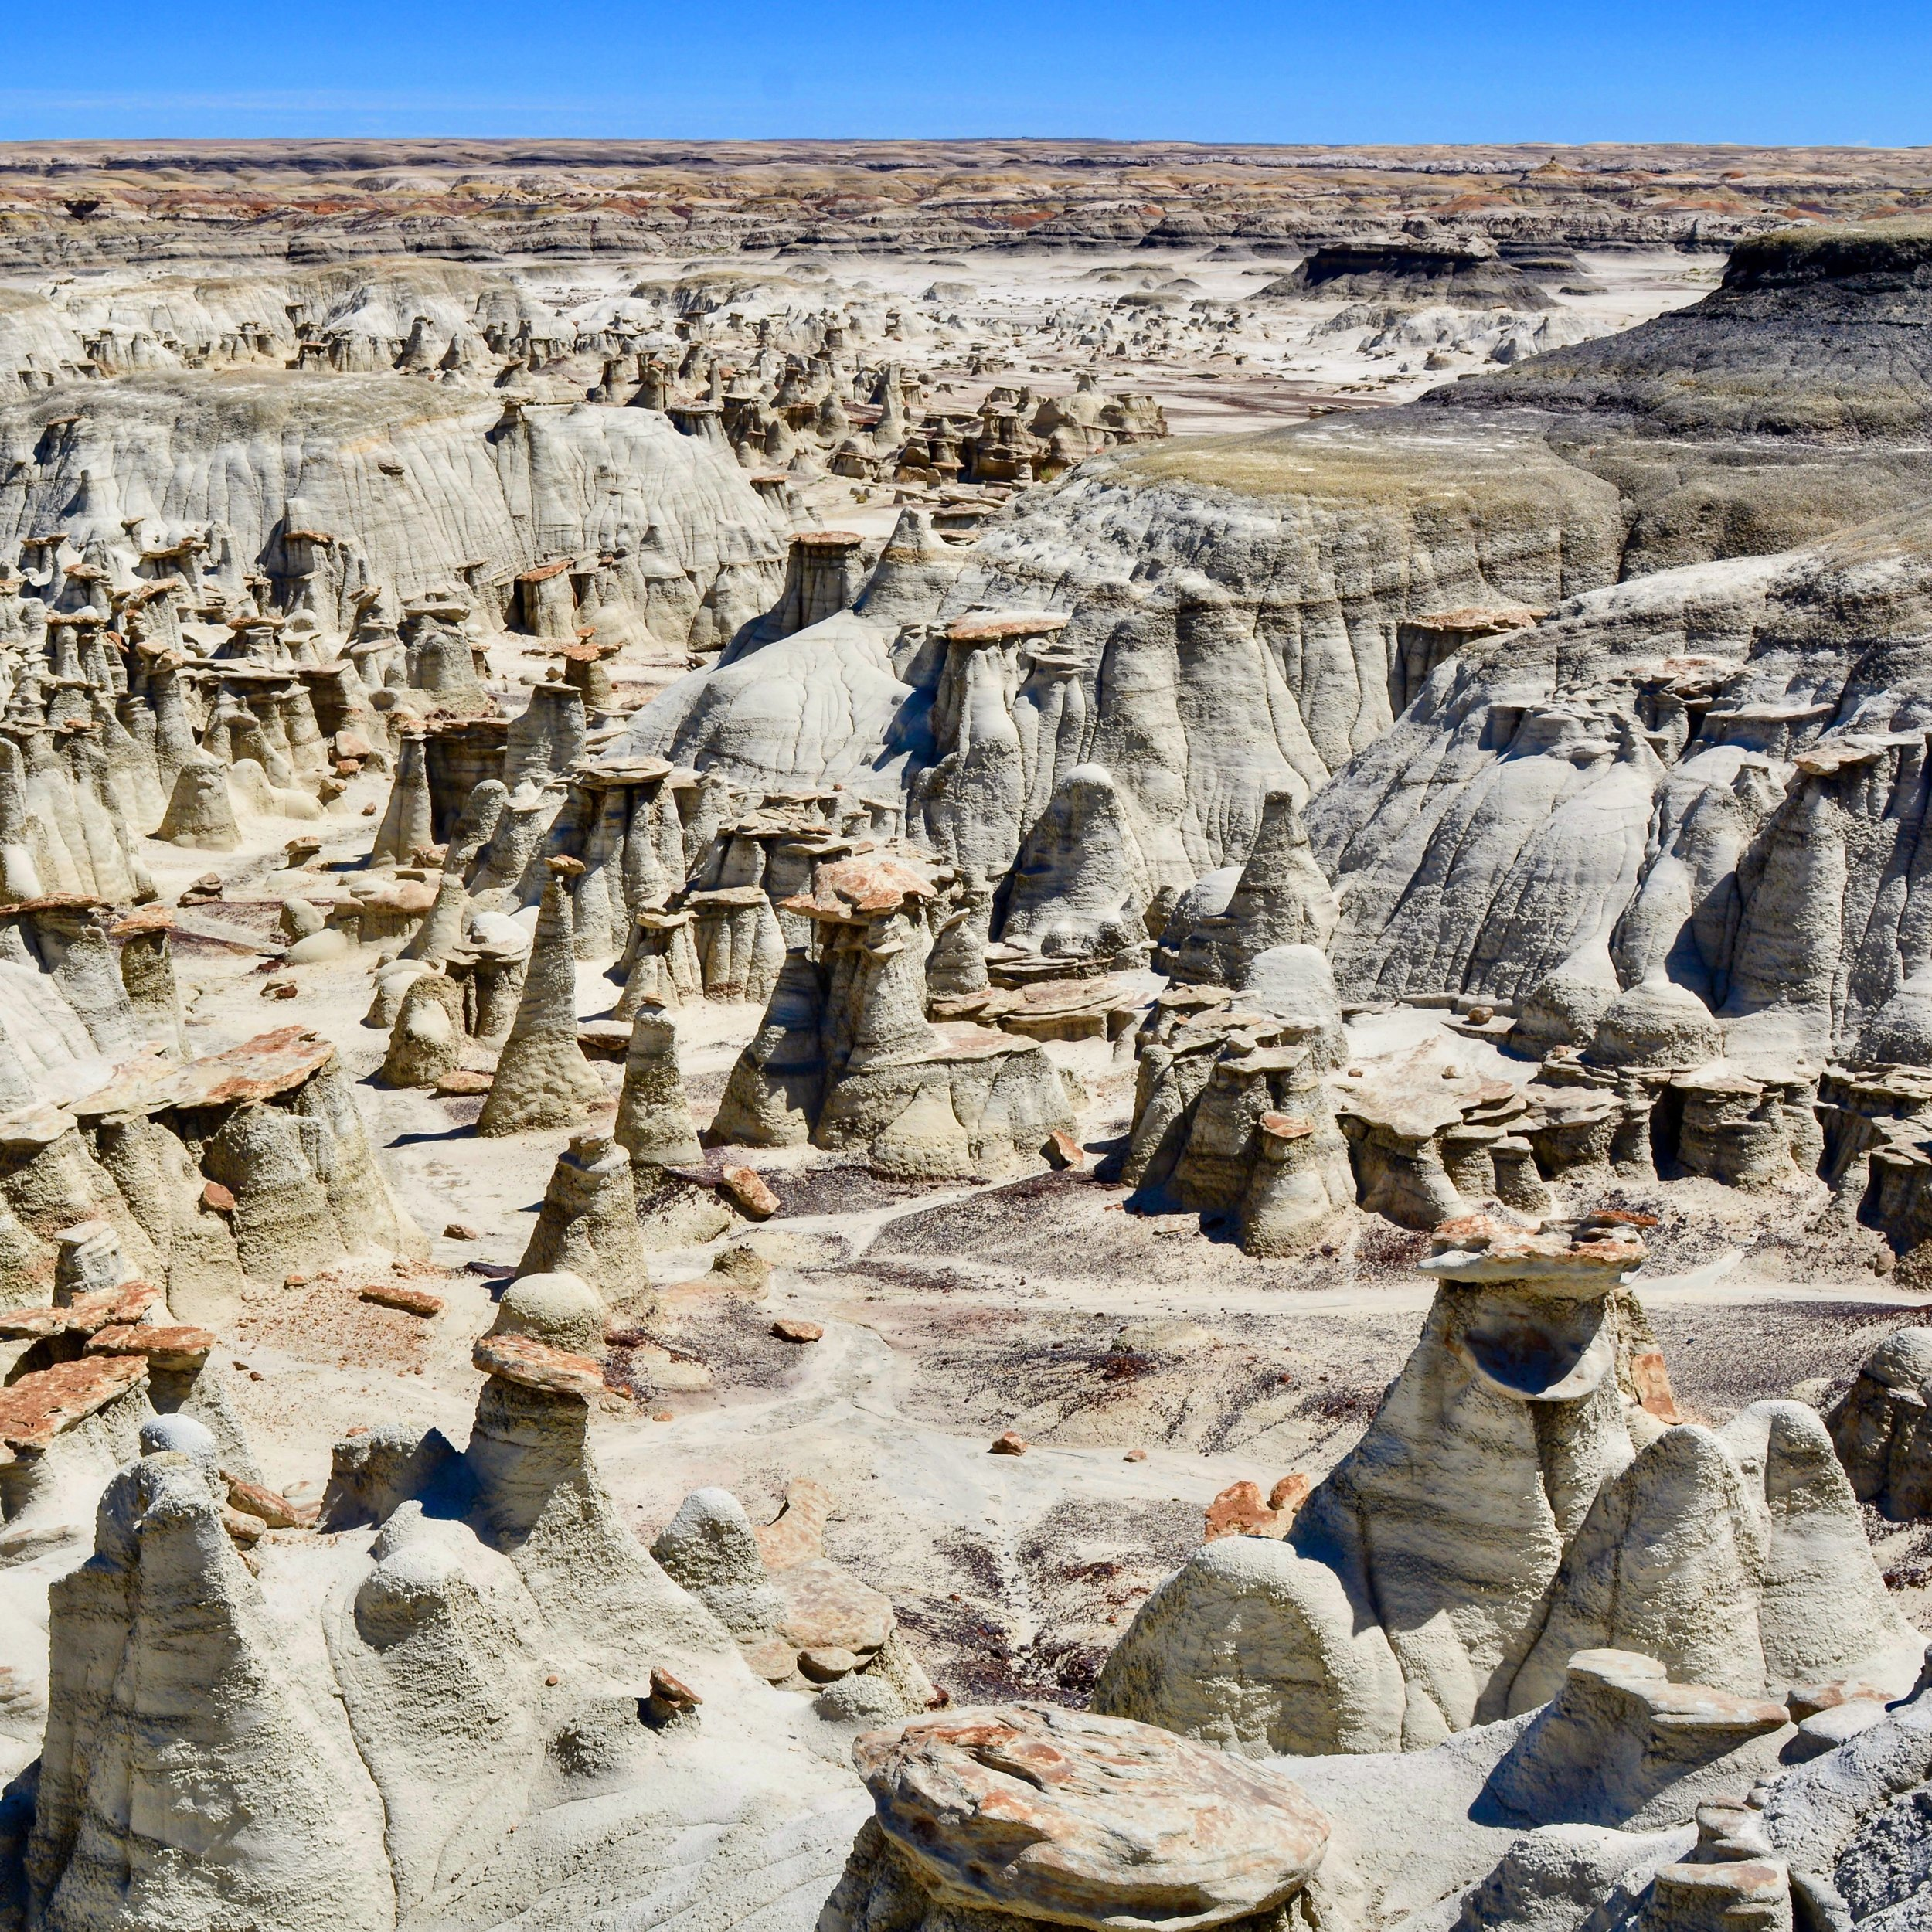 Bisti/De-Na-Zin Wilderness,